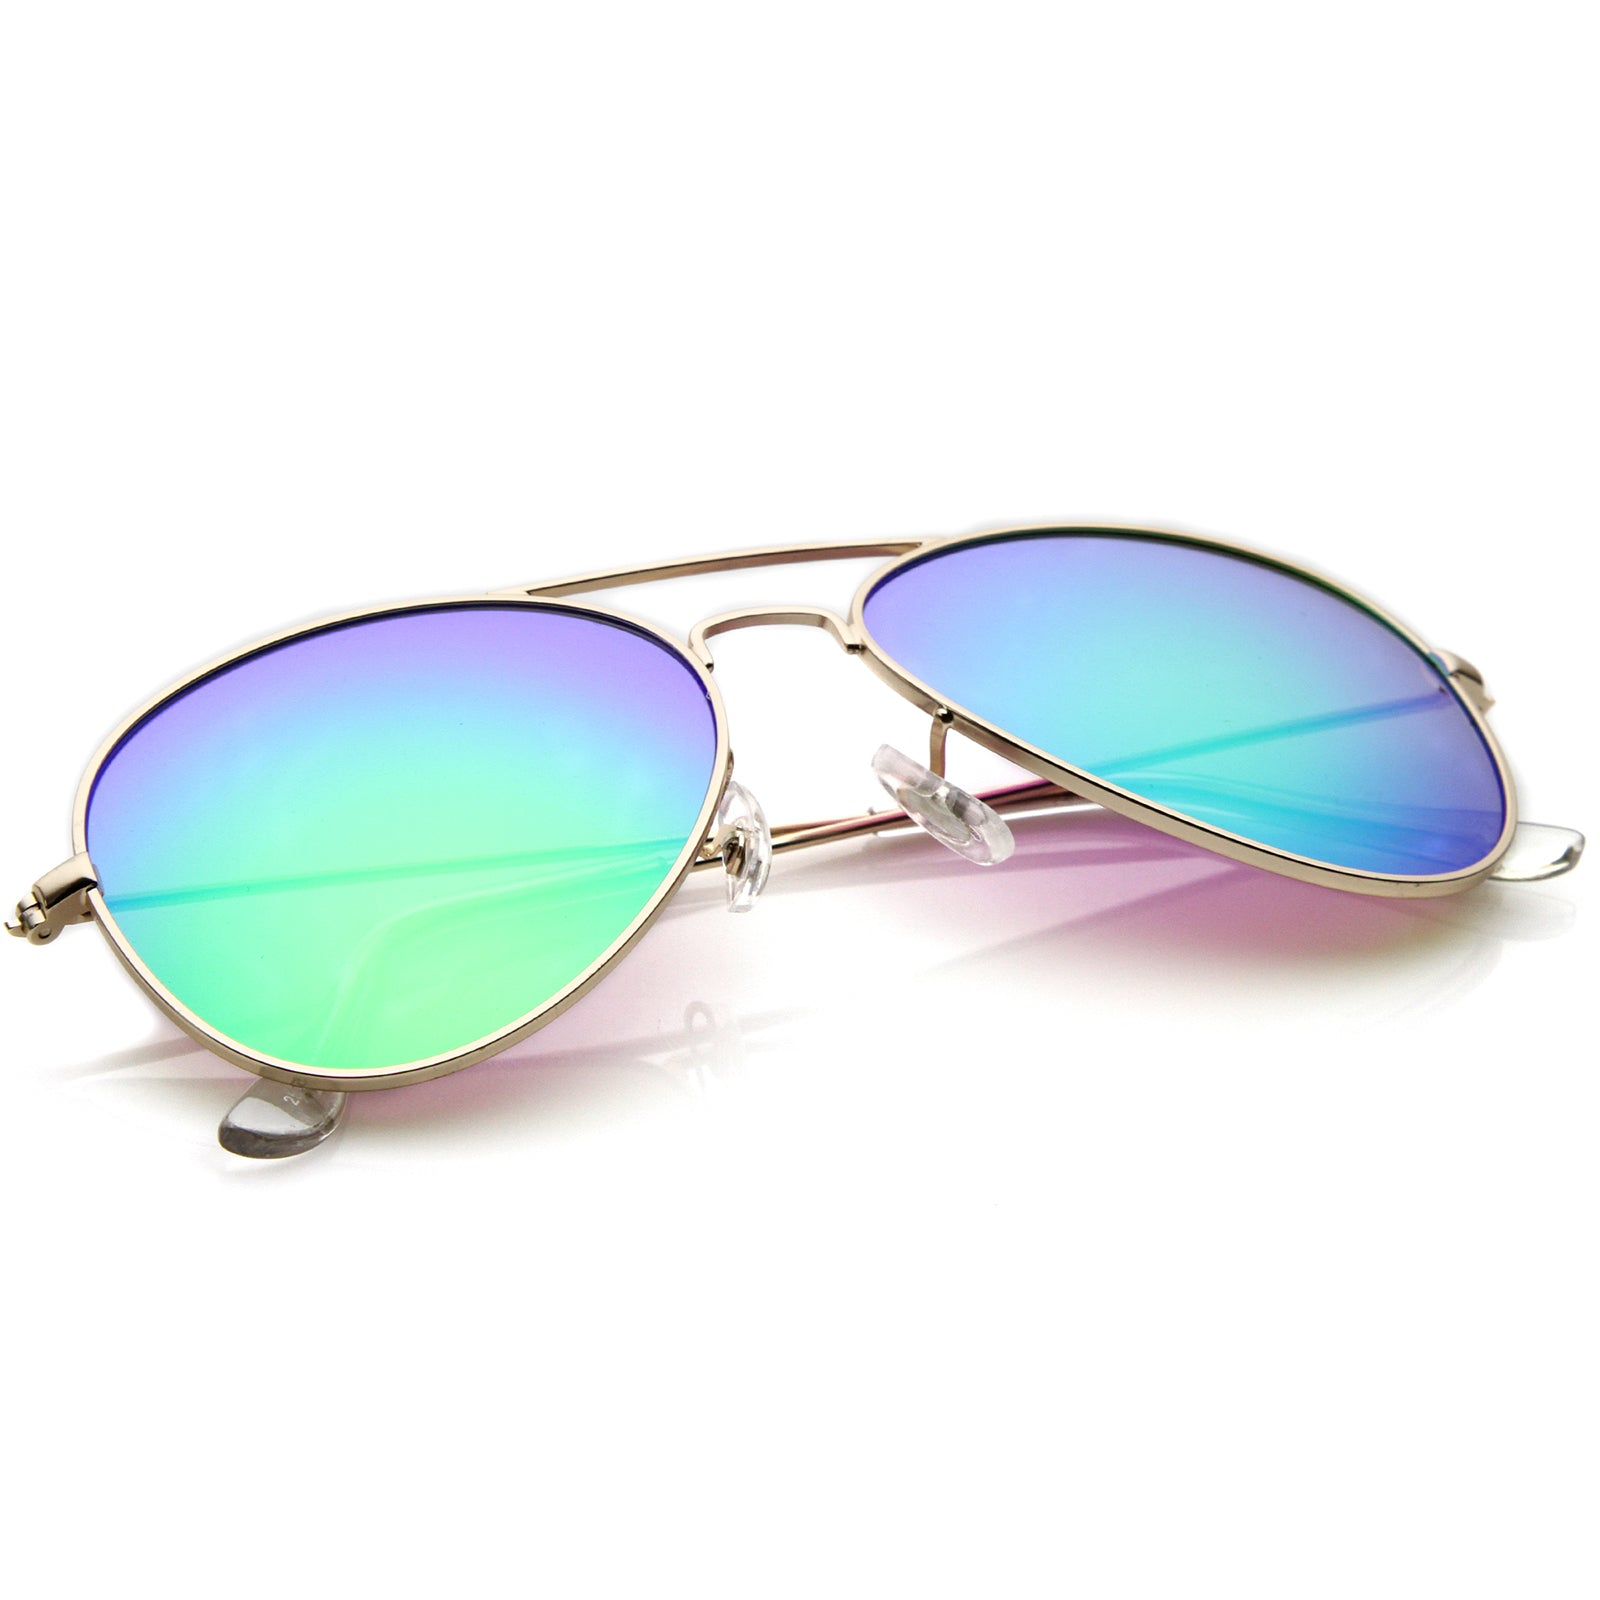 Premium Nickel Plated Frame Multi-Coated Mirror Lens Aviator Sunglasses 59mm - sunglass.la - 12